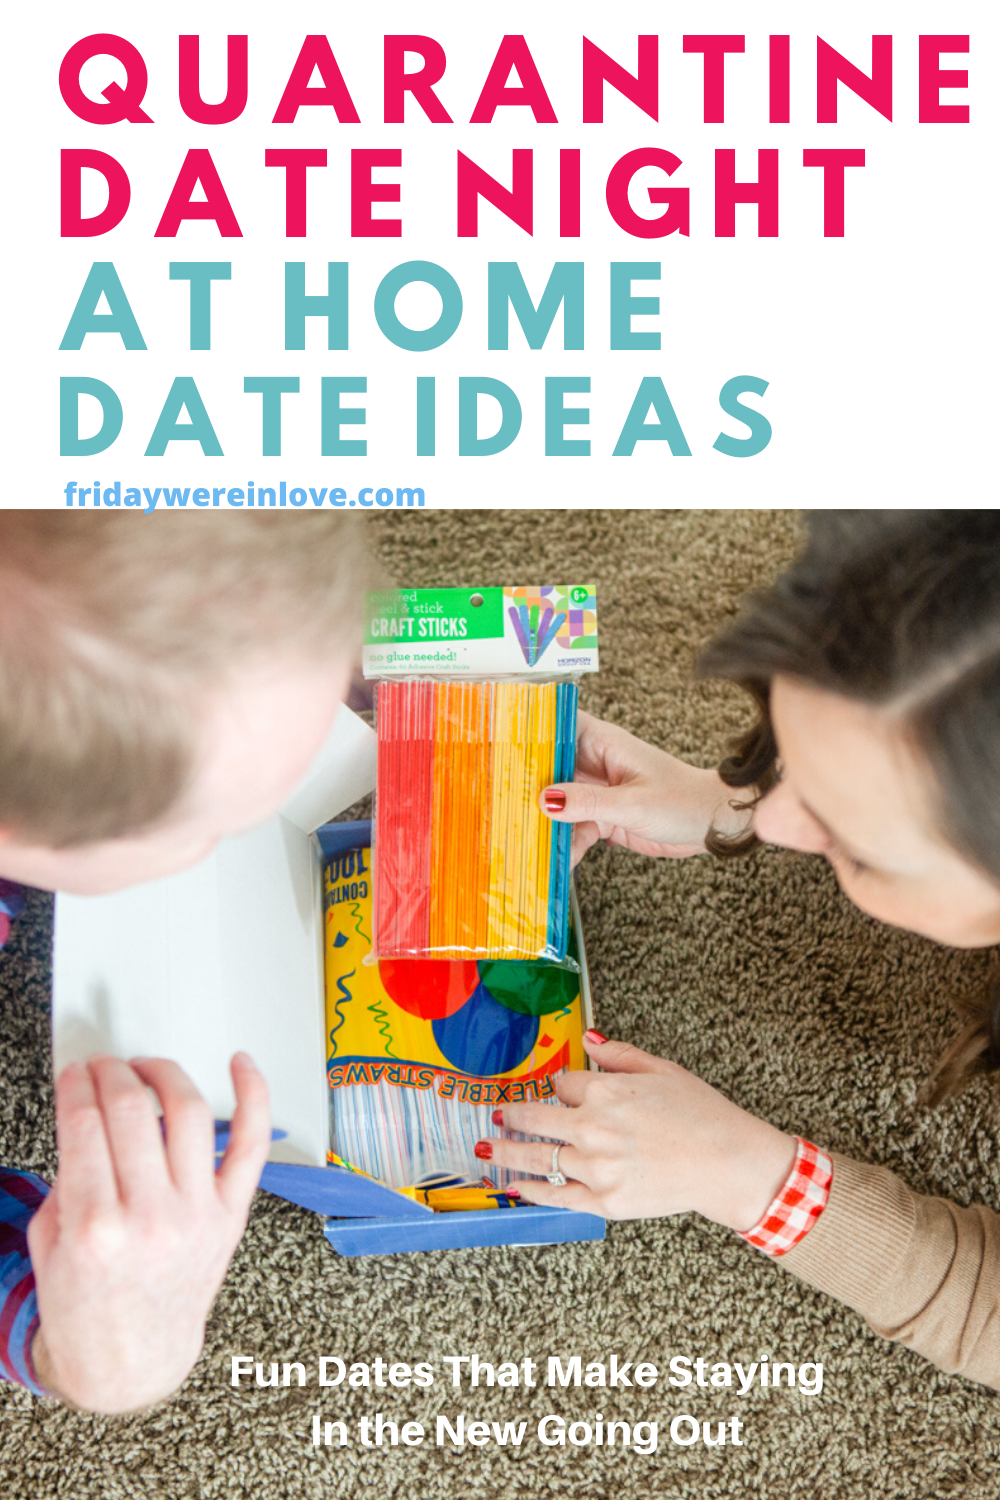 At Home Date Ideas 52 Stay At Home Date Ideas Friday We Re In Love At Home Dates At Home Date Dating